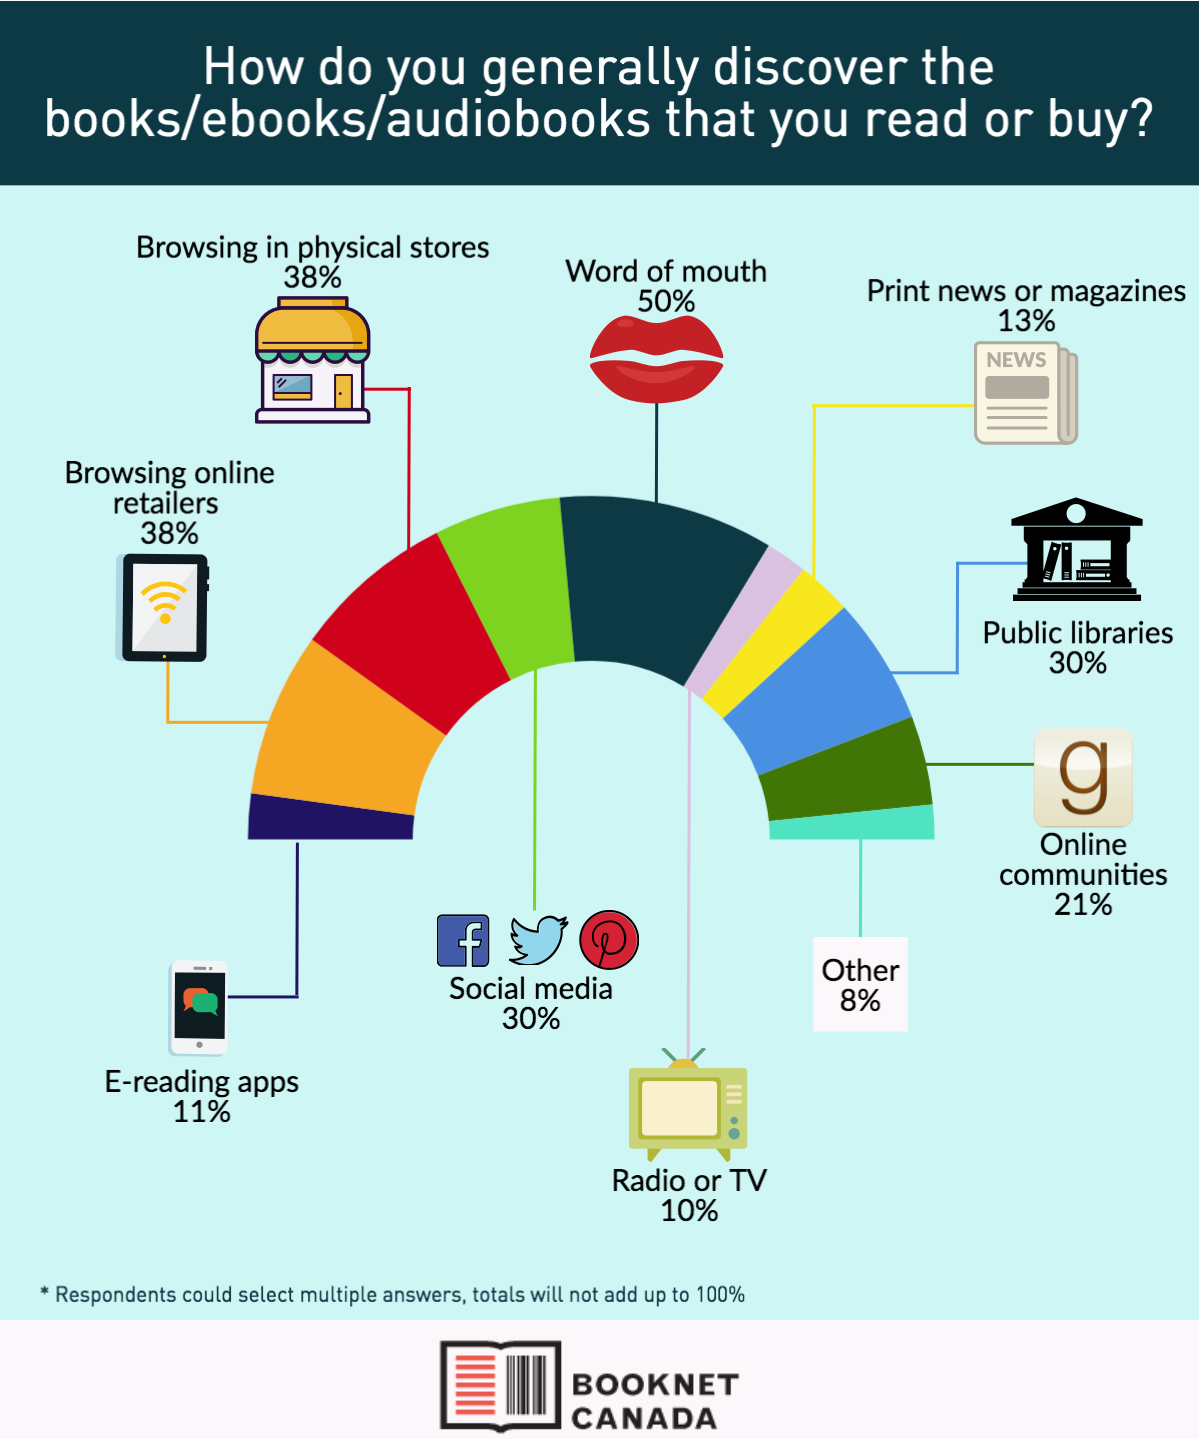 Infographic showing the ways Canadians discover the books they read.